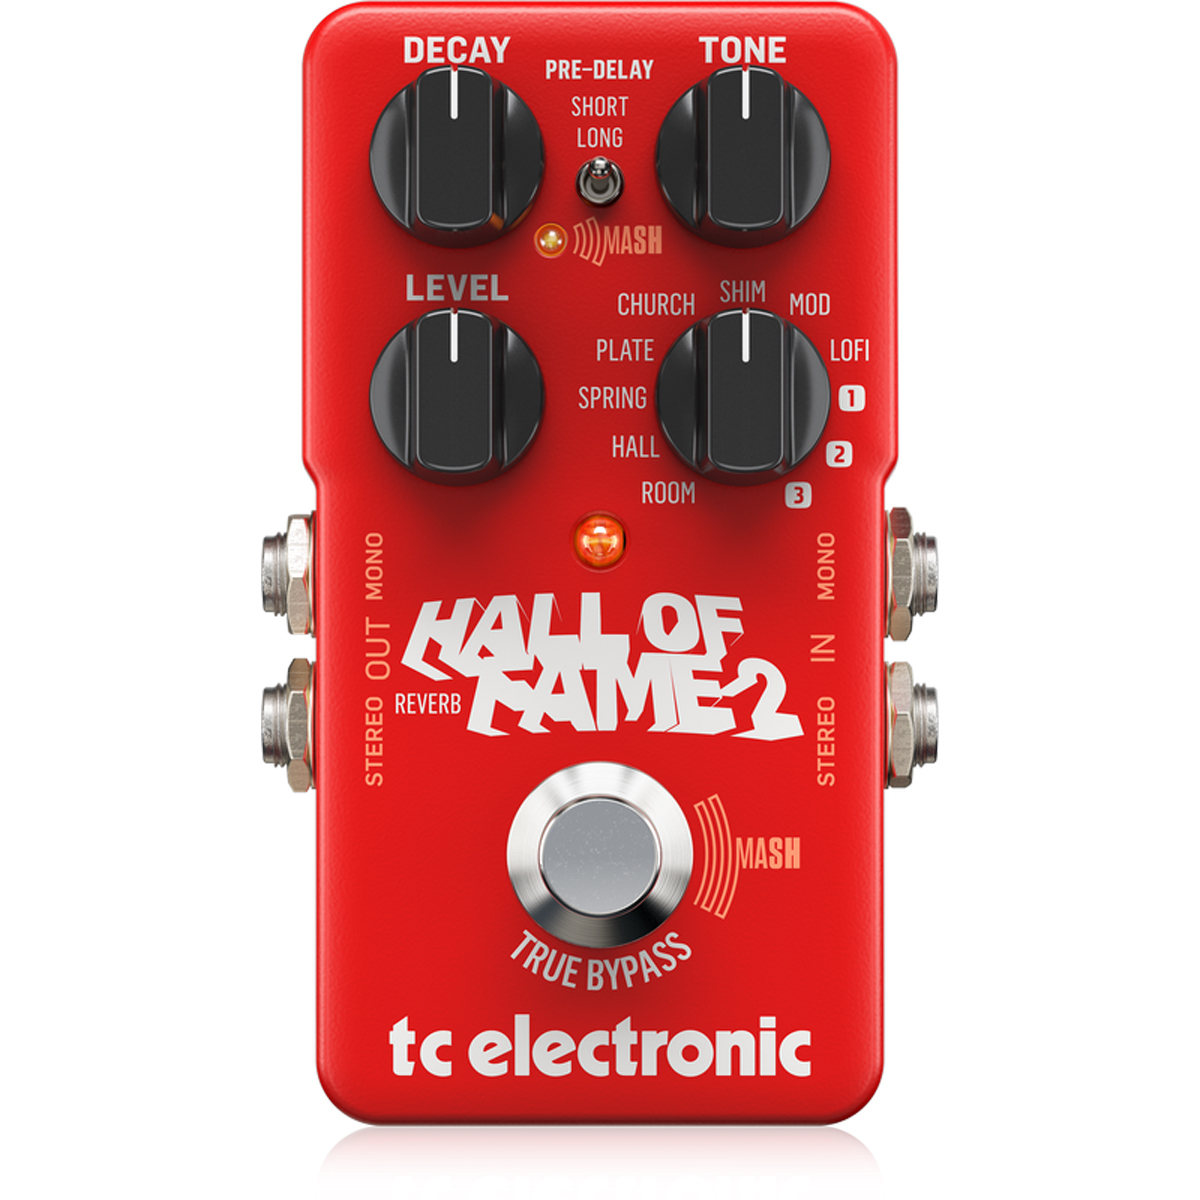 tc electronic hall of fame 2 reverb pedal sonic circus. Black Bedroom Furniture Sets. Home Design Ideas